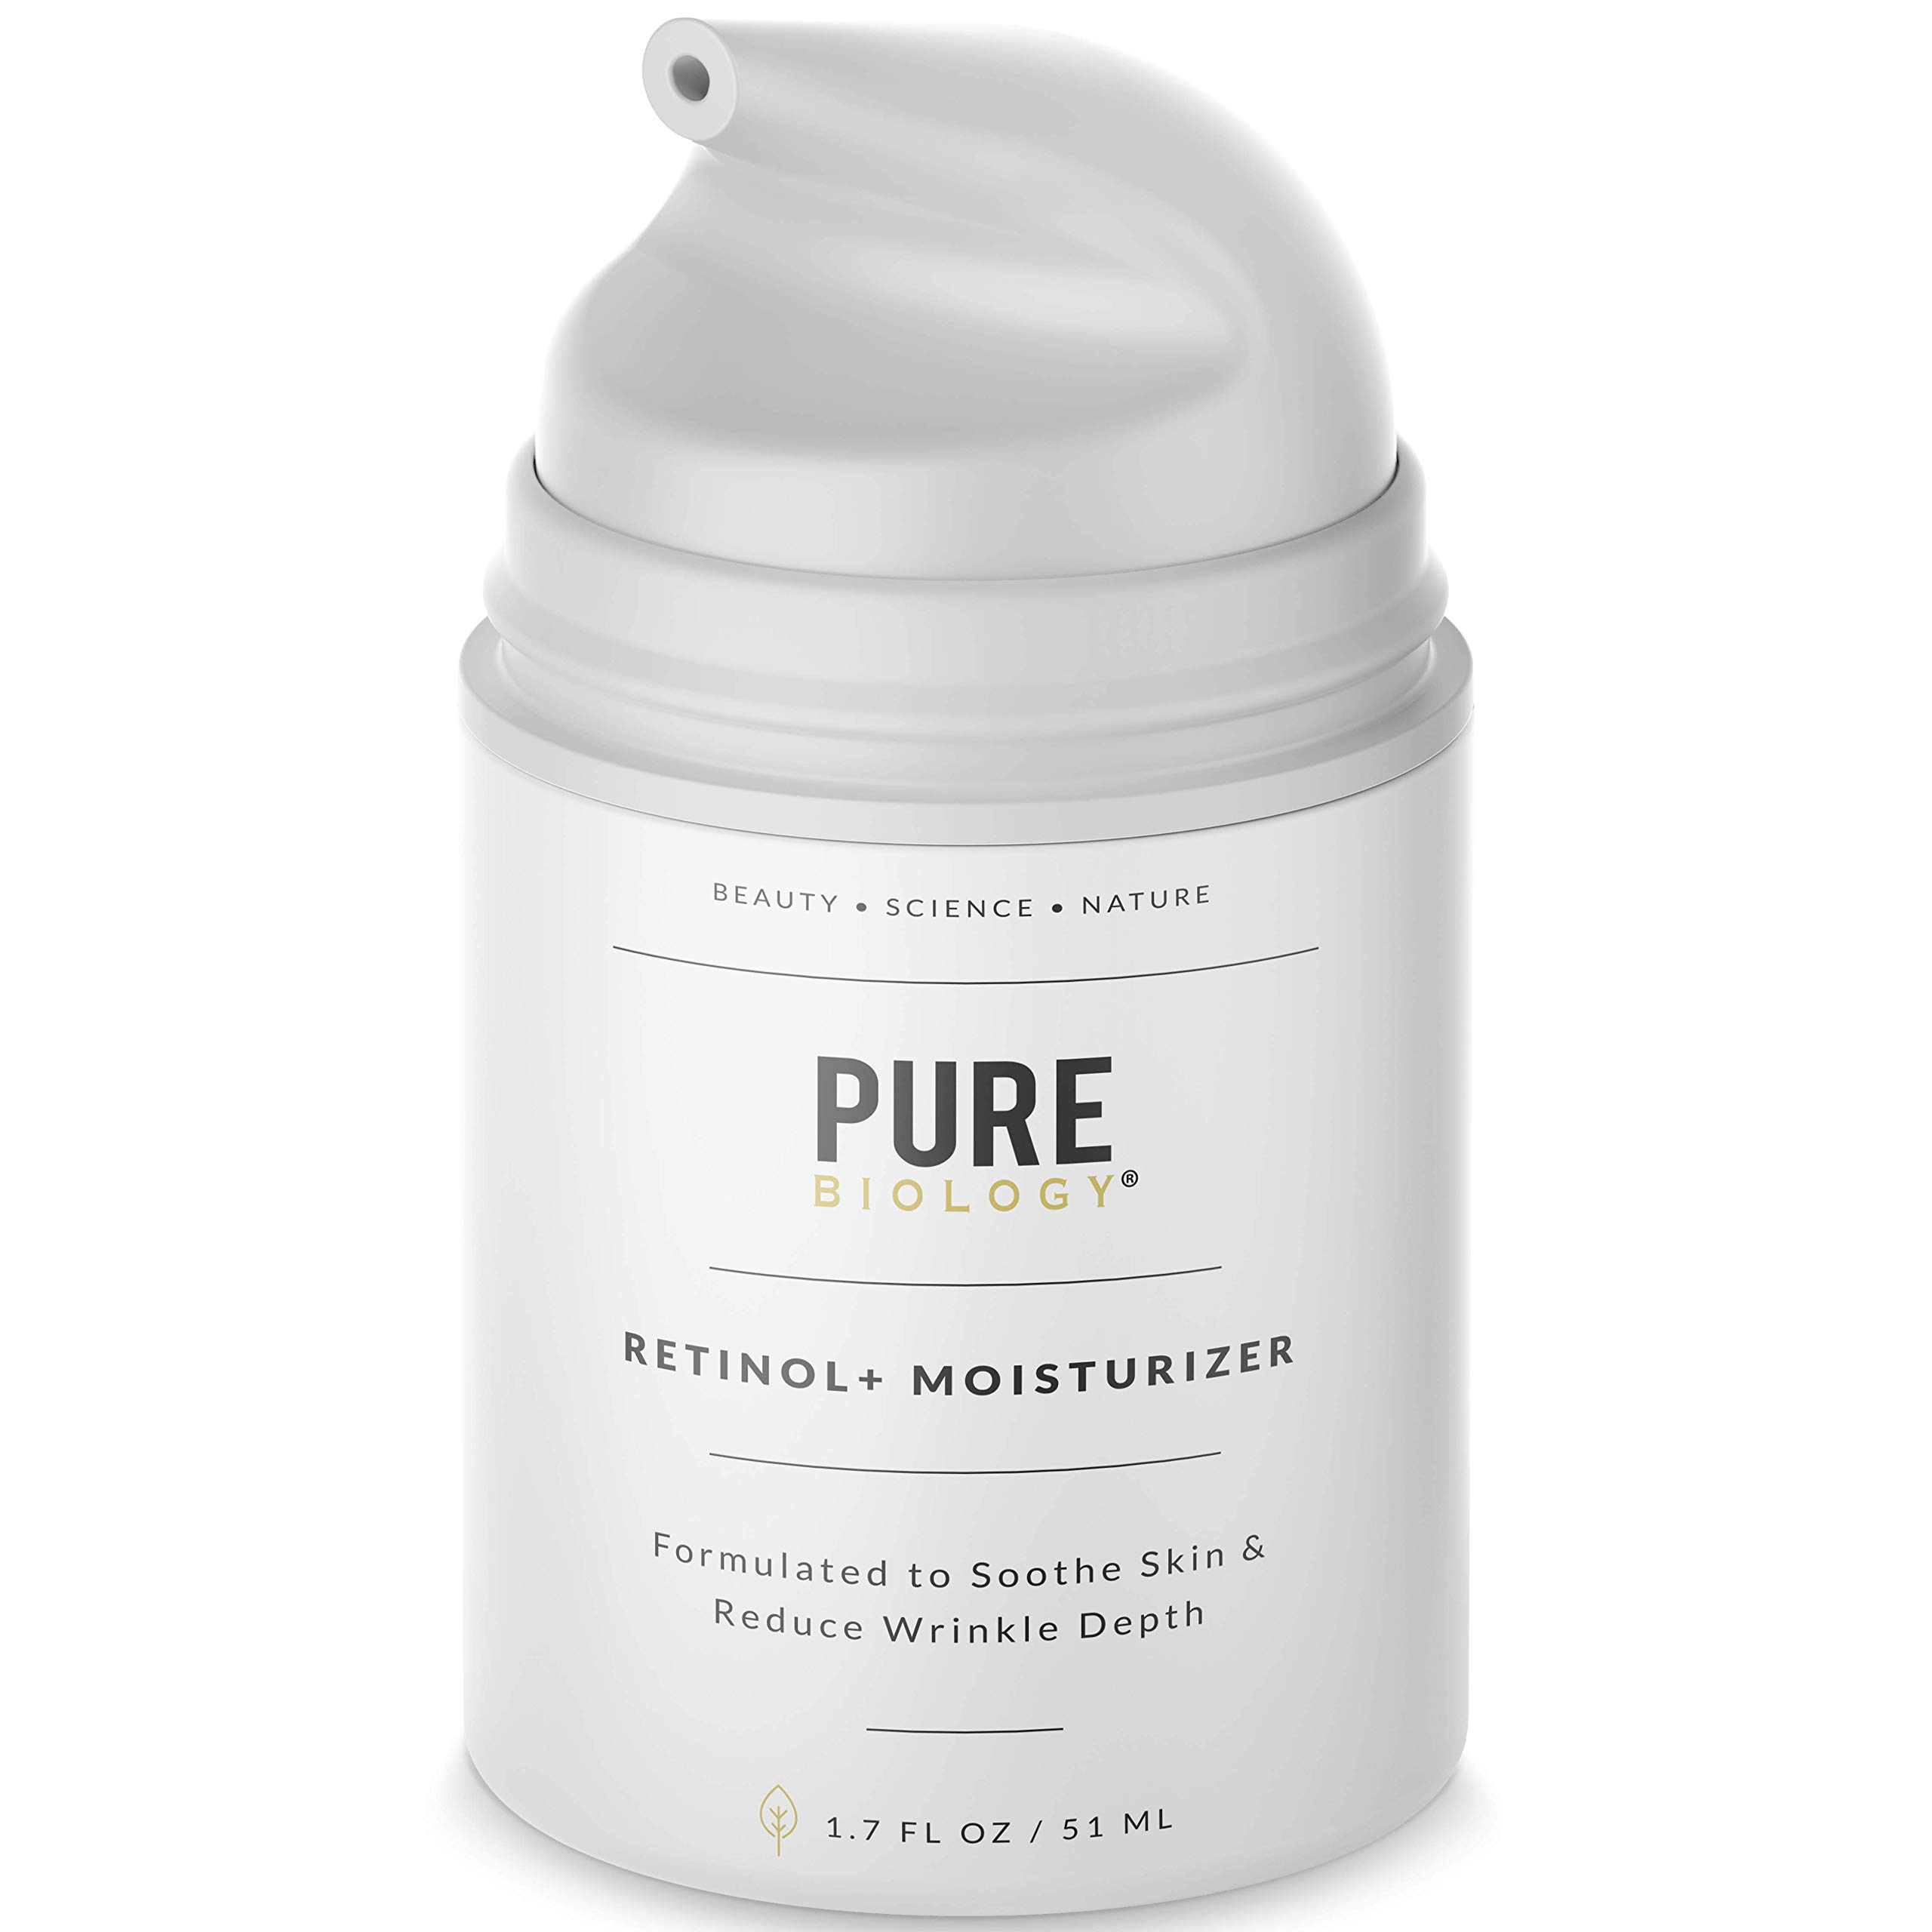 Pure Biology Premium Retinol Cream Face Moisturizer with Hyaluronic Acid, Vitamins B + C & Anti Aging Wrinkle Complexes for Men & Women, 1.7 oz by Pure Biology